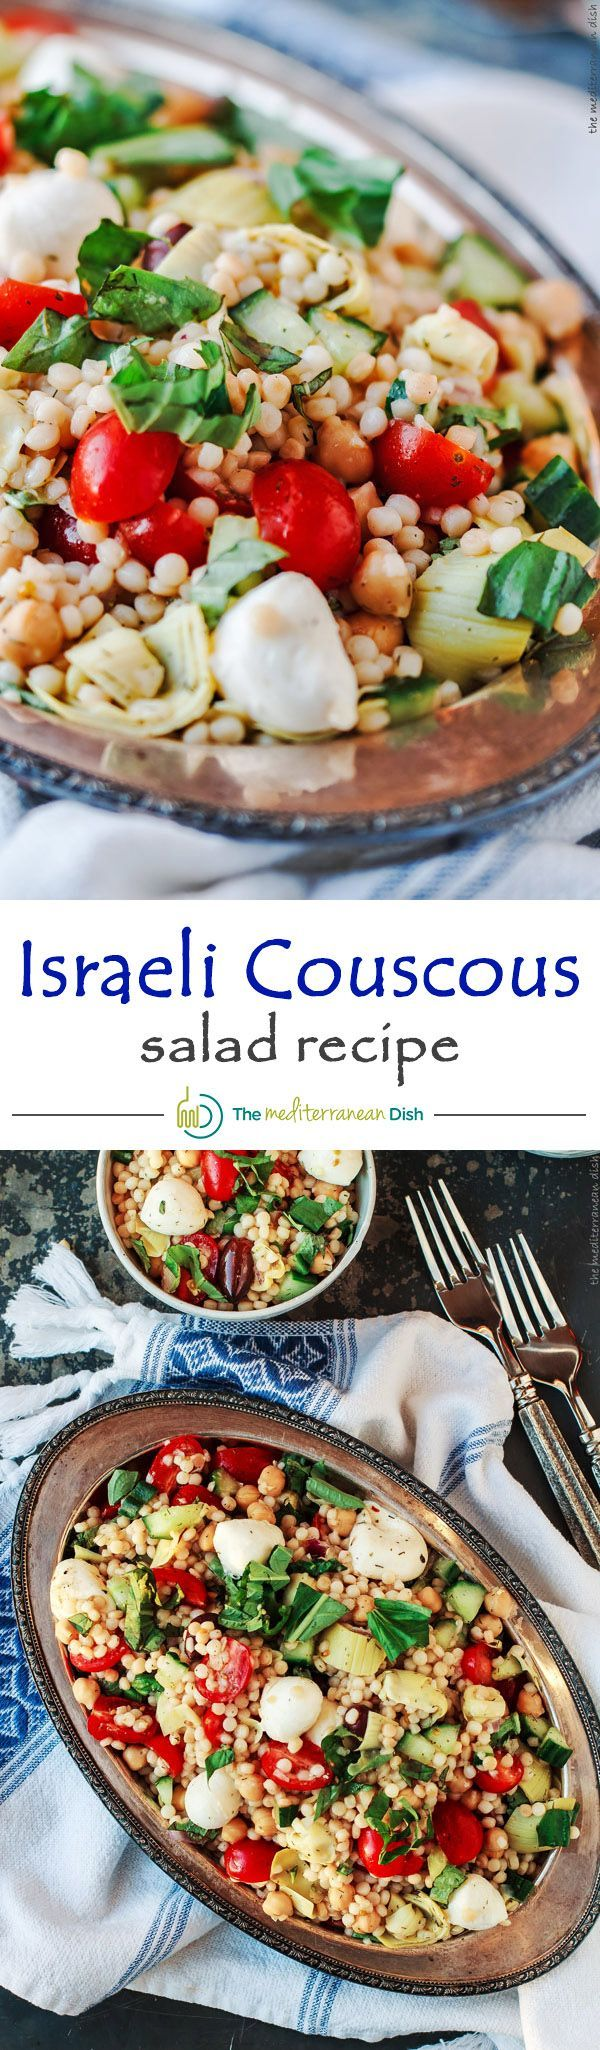 Flavor-packed Israeli Couscous Salad with lots of chopped vegetables, chickpeas and artichokes. The perfect healthy and tasty bowl.